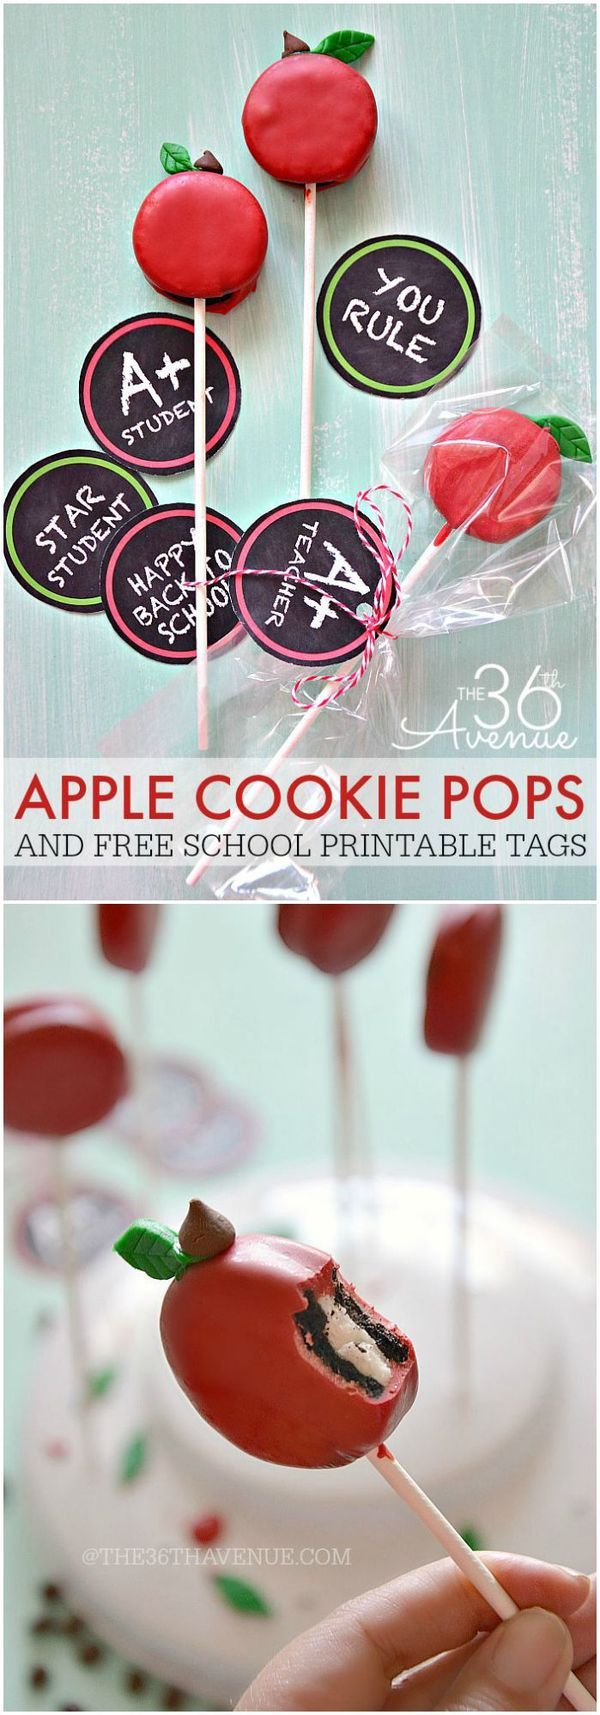 Back to School - Apple Oreo Pops Recipe and Free Printables at the36thavenue.com. Cute idea for an apple themed party. Or fall desserts table.